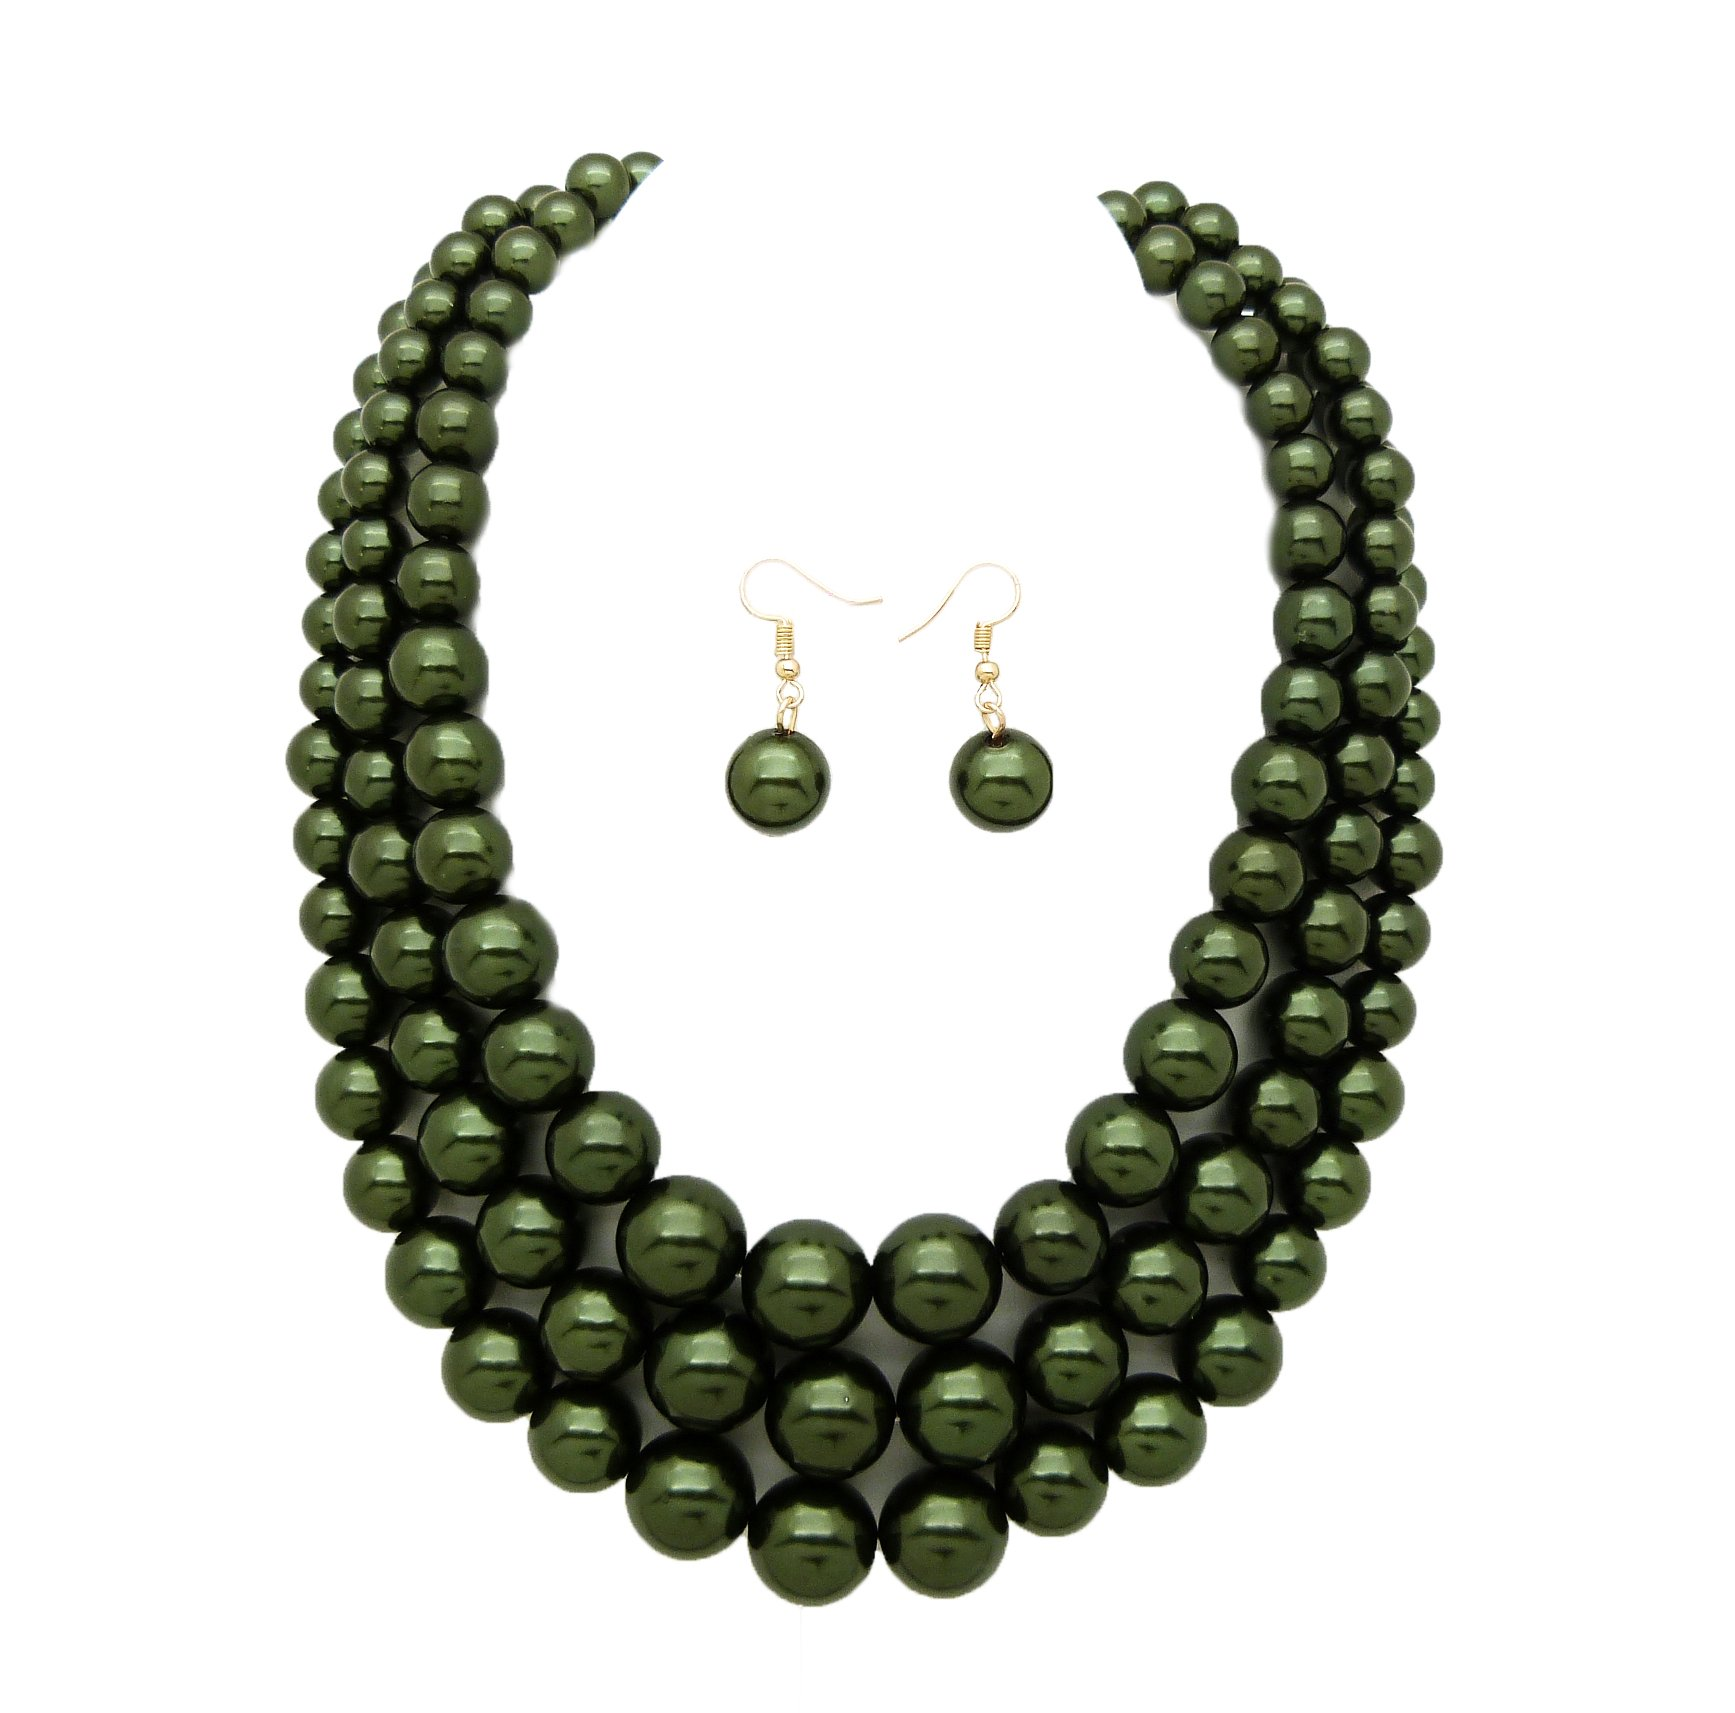 Women's Simulated Faux Three Multi-Strand Pearl Statement Necklace and Earrings Set (Dark Olive Green)